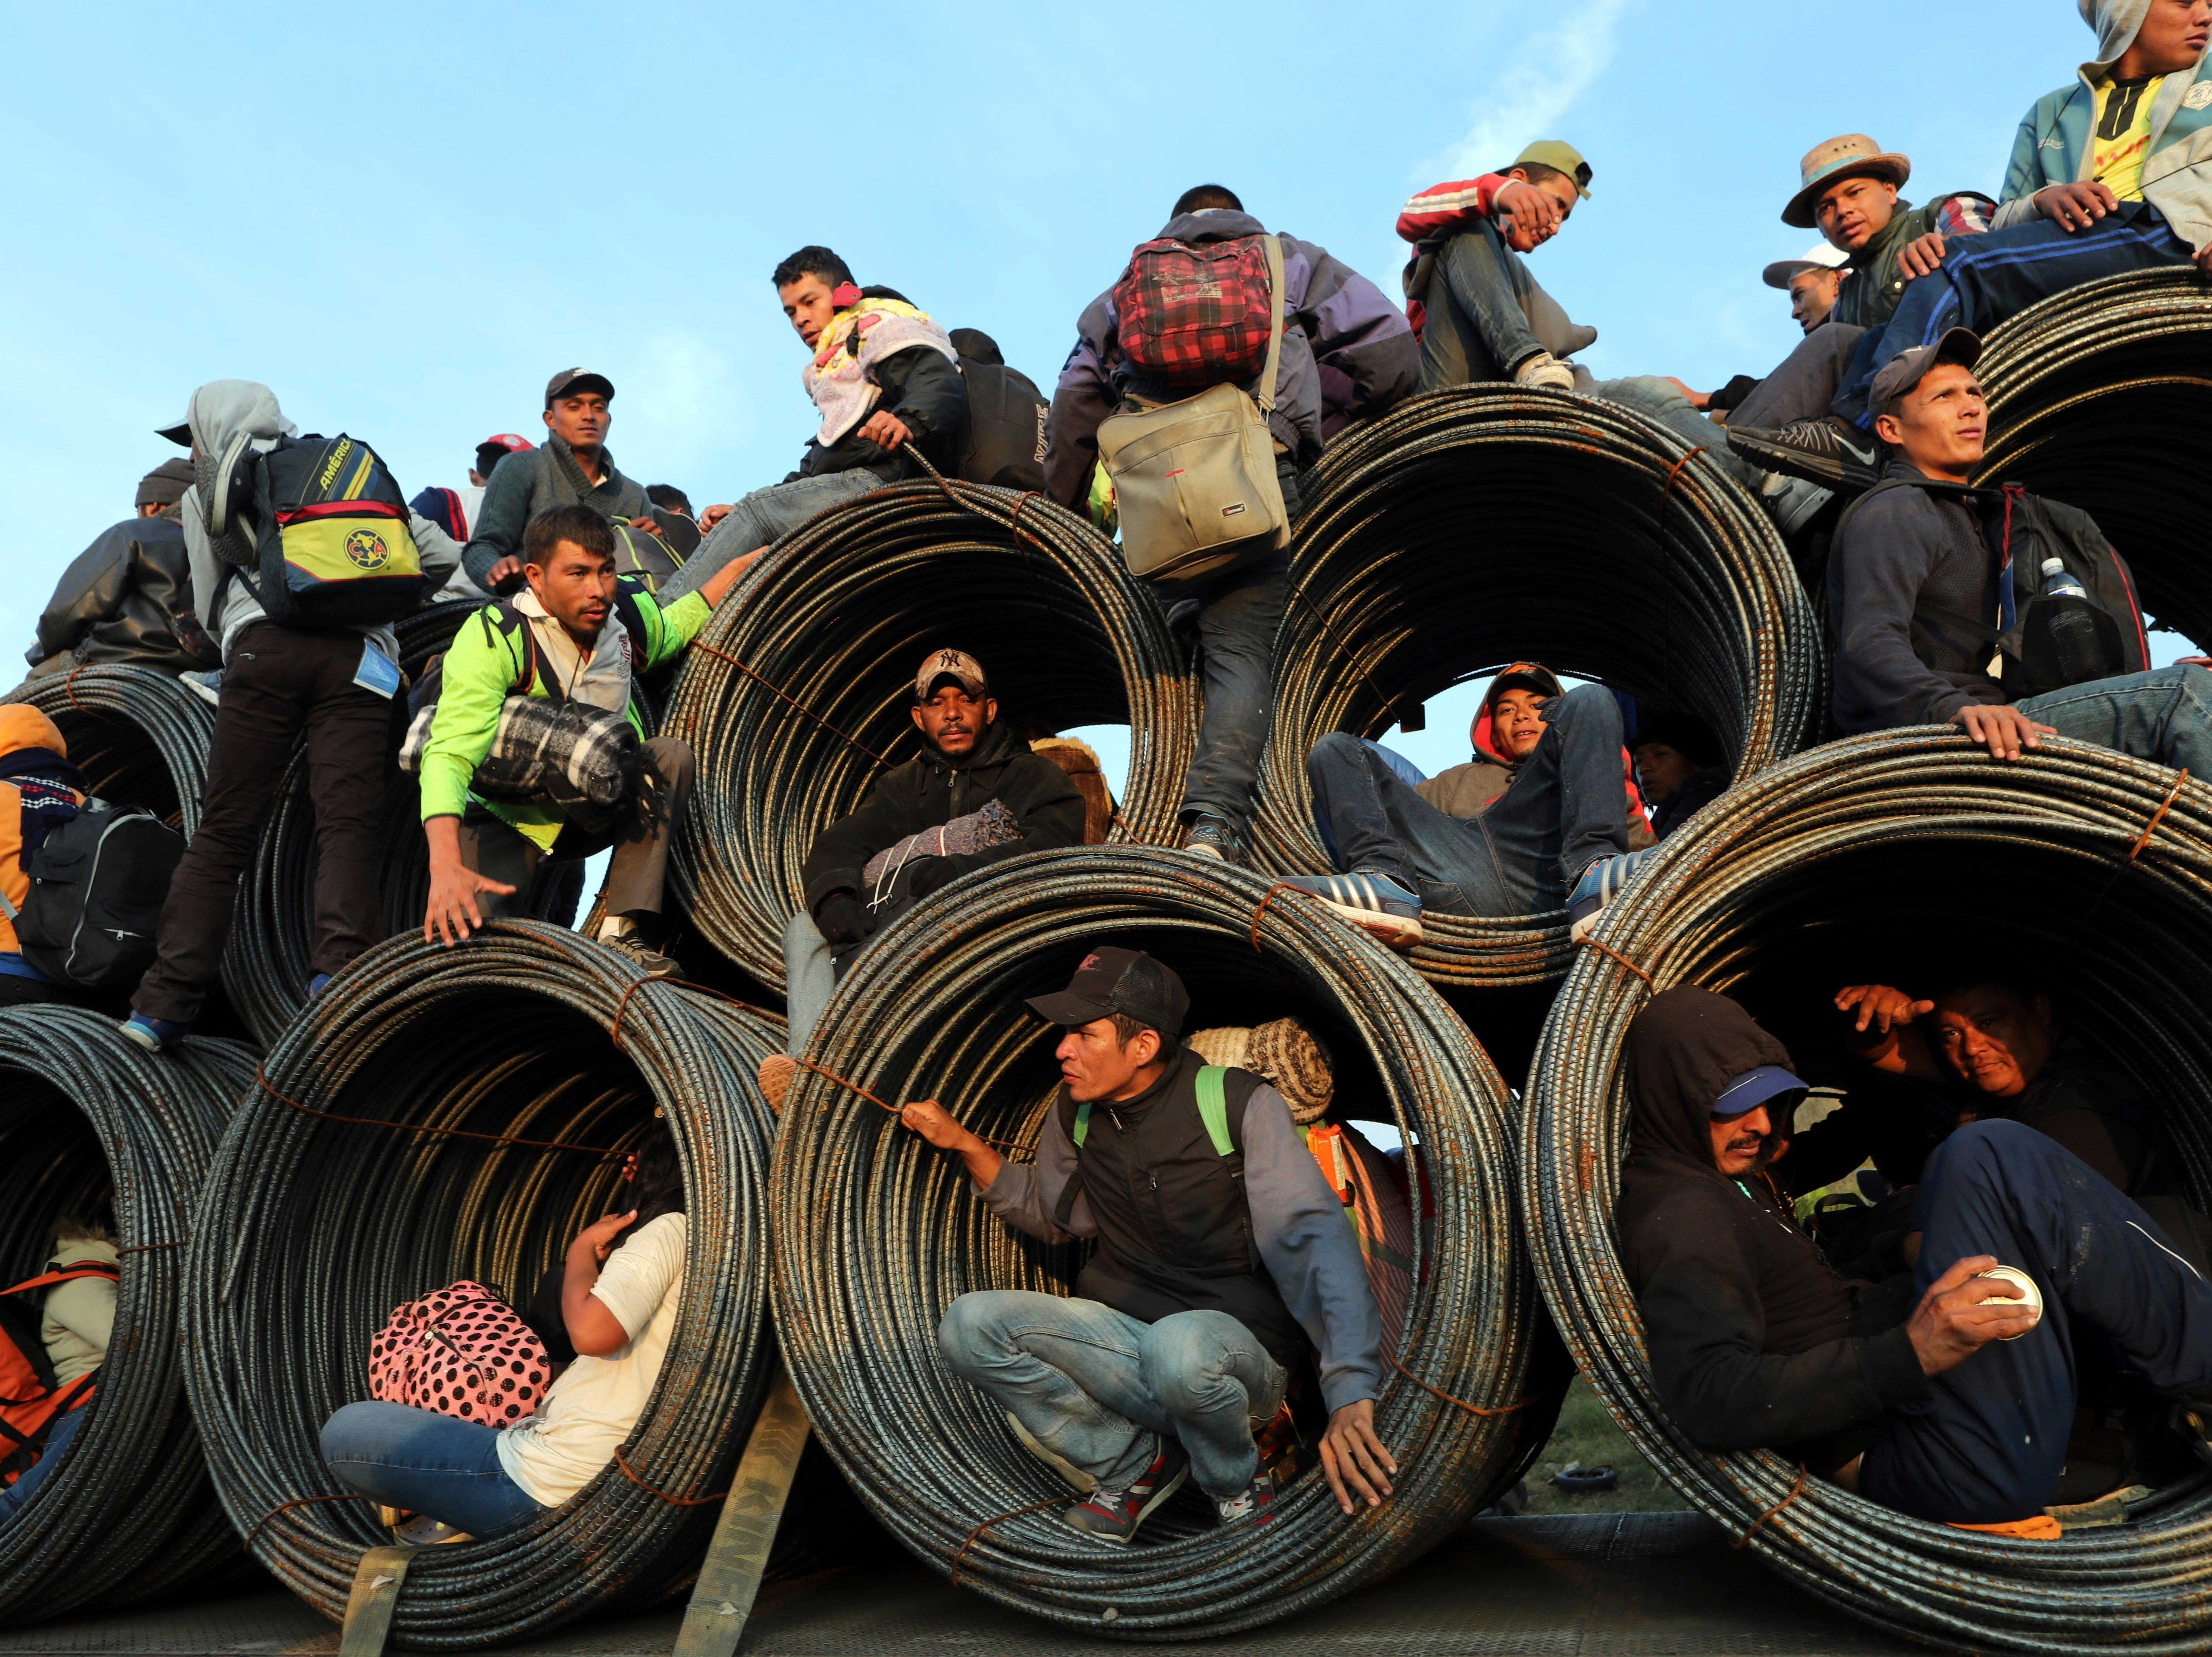 Central American migrants, part of the caravan hoping to reach the U.S. border, get a ride on a truck carrying rolls of steel rebar, in Irapuato, Mexico, Monday, Nov. 12, 2018. Several thousand Central American migrants marked a month on the road Monday as they hitched rides to the western Mexico city of Guadalajara and toward the U.S. border.